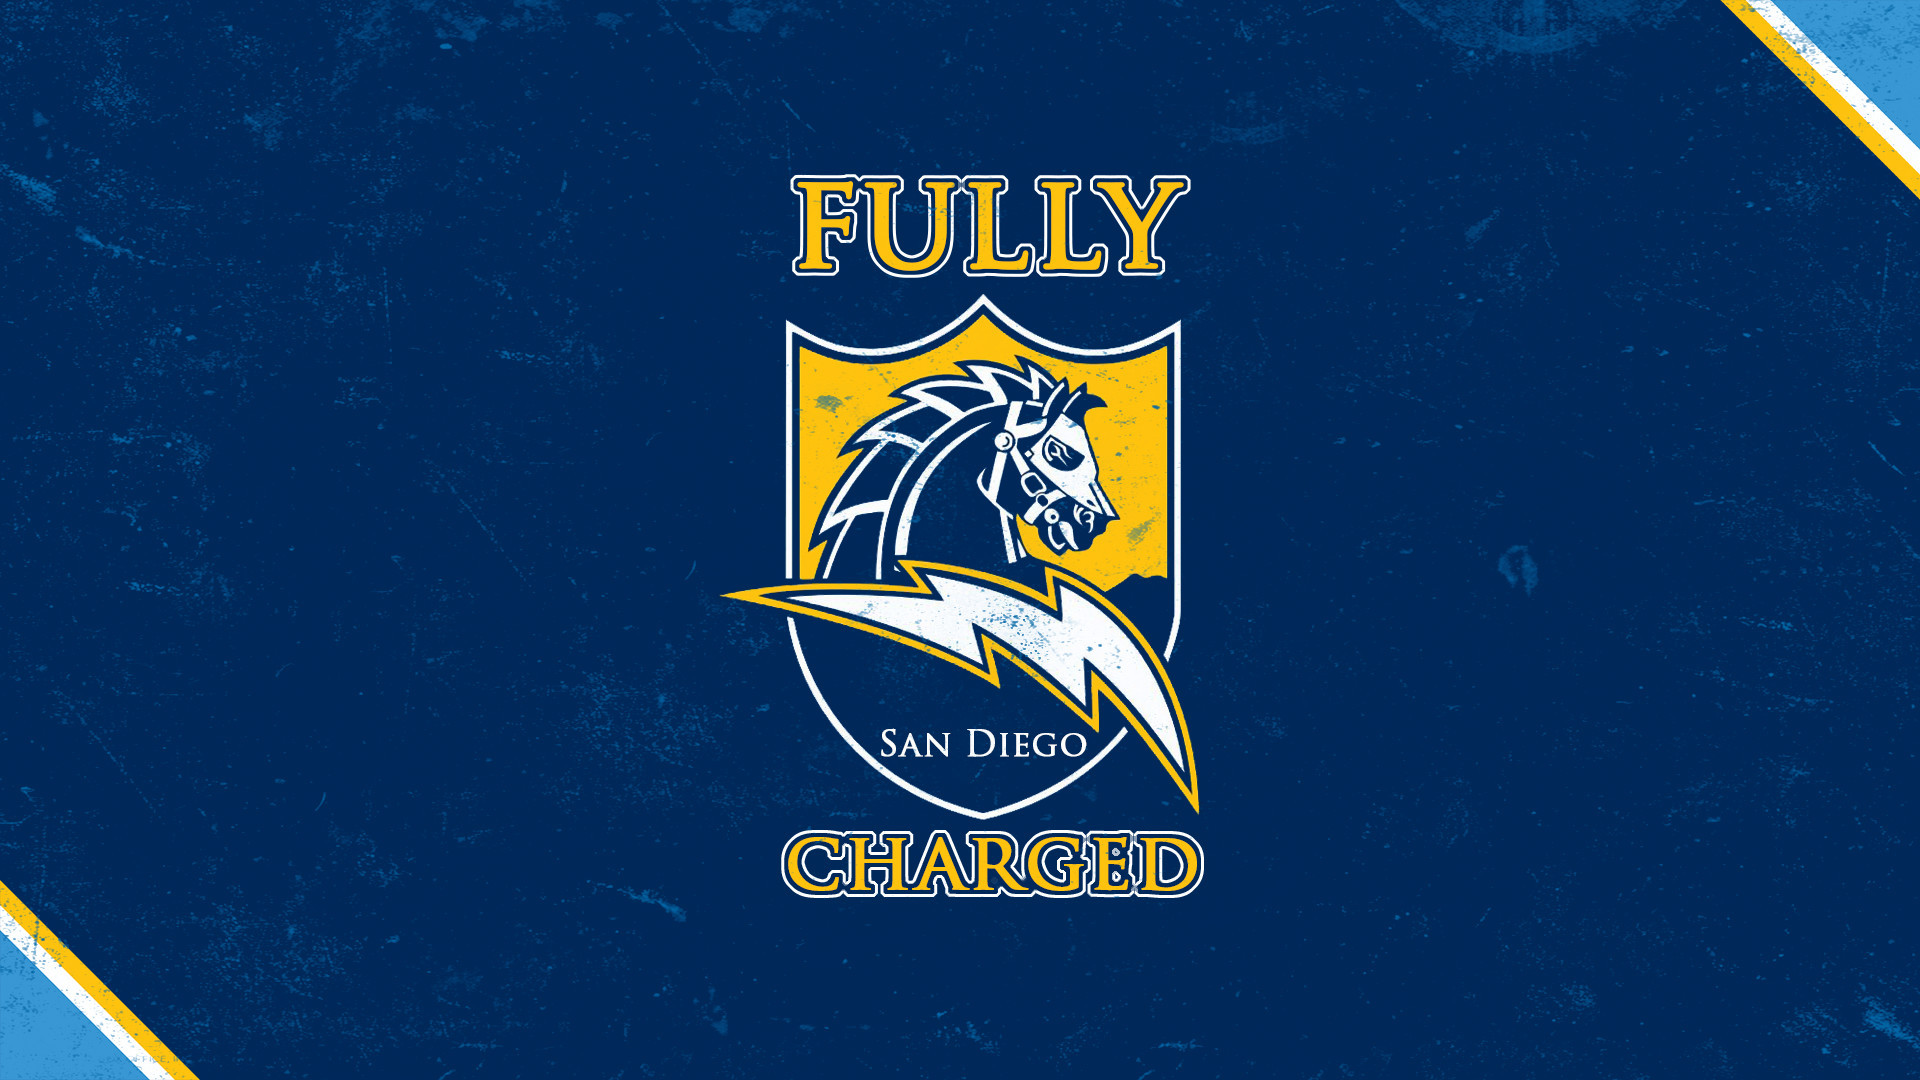 1920x1080 Amazing San Diego chargers wallpaper.